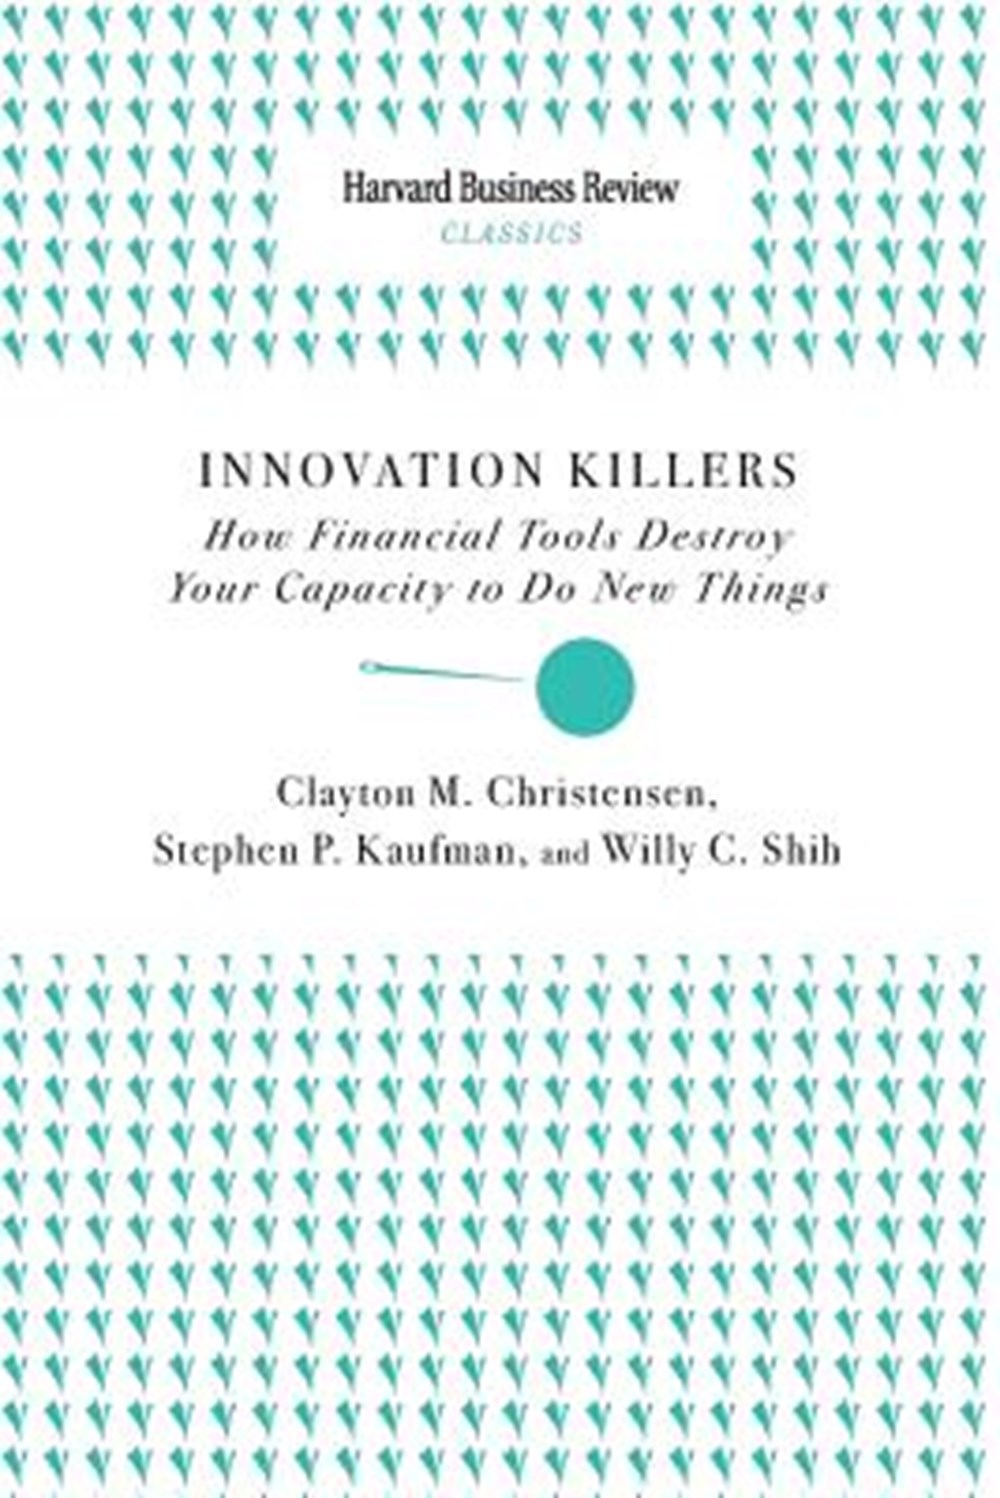 Innovation Killers How Financial Tools Destroy Your Capacity to Do New Things